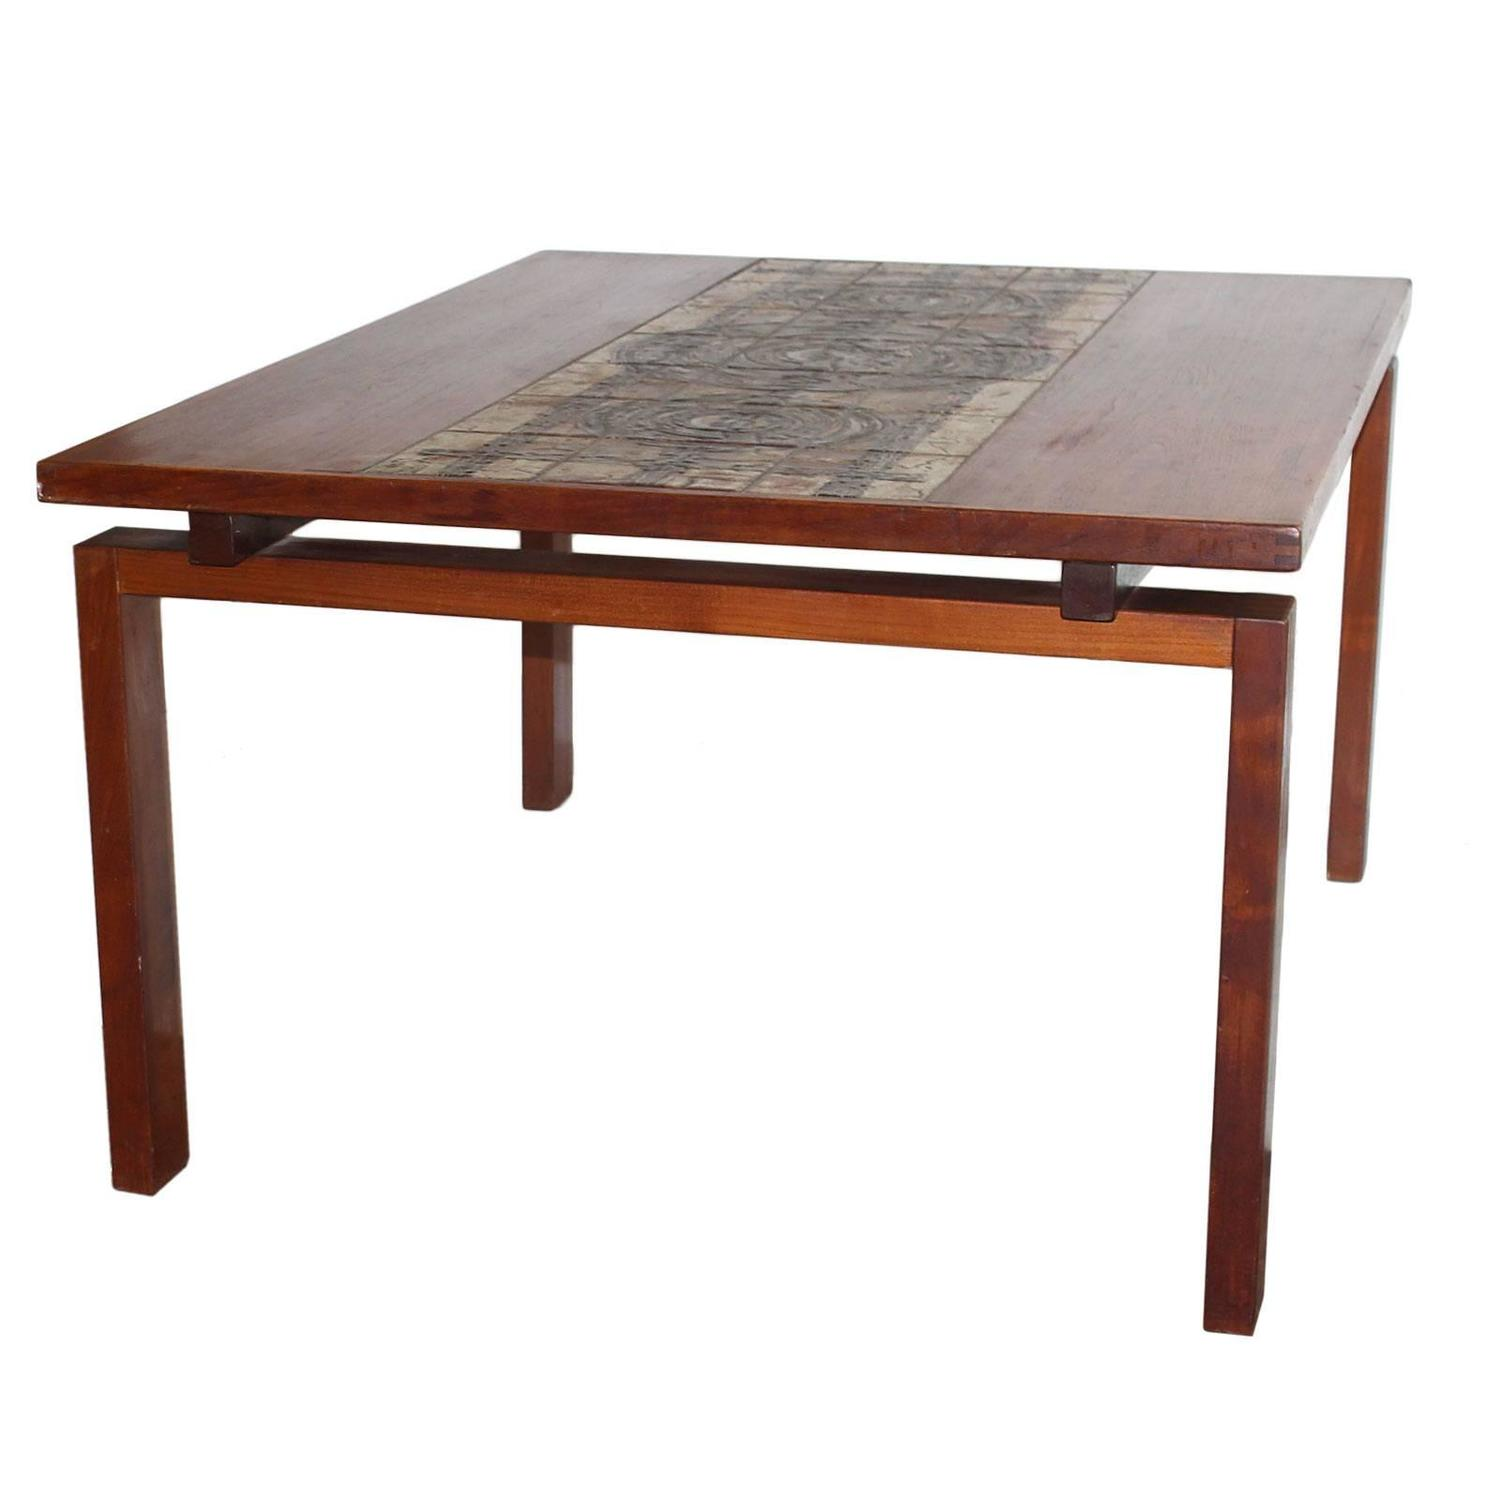 Teak Dining Table By Ox Art For Sale At 1stdibs